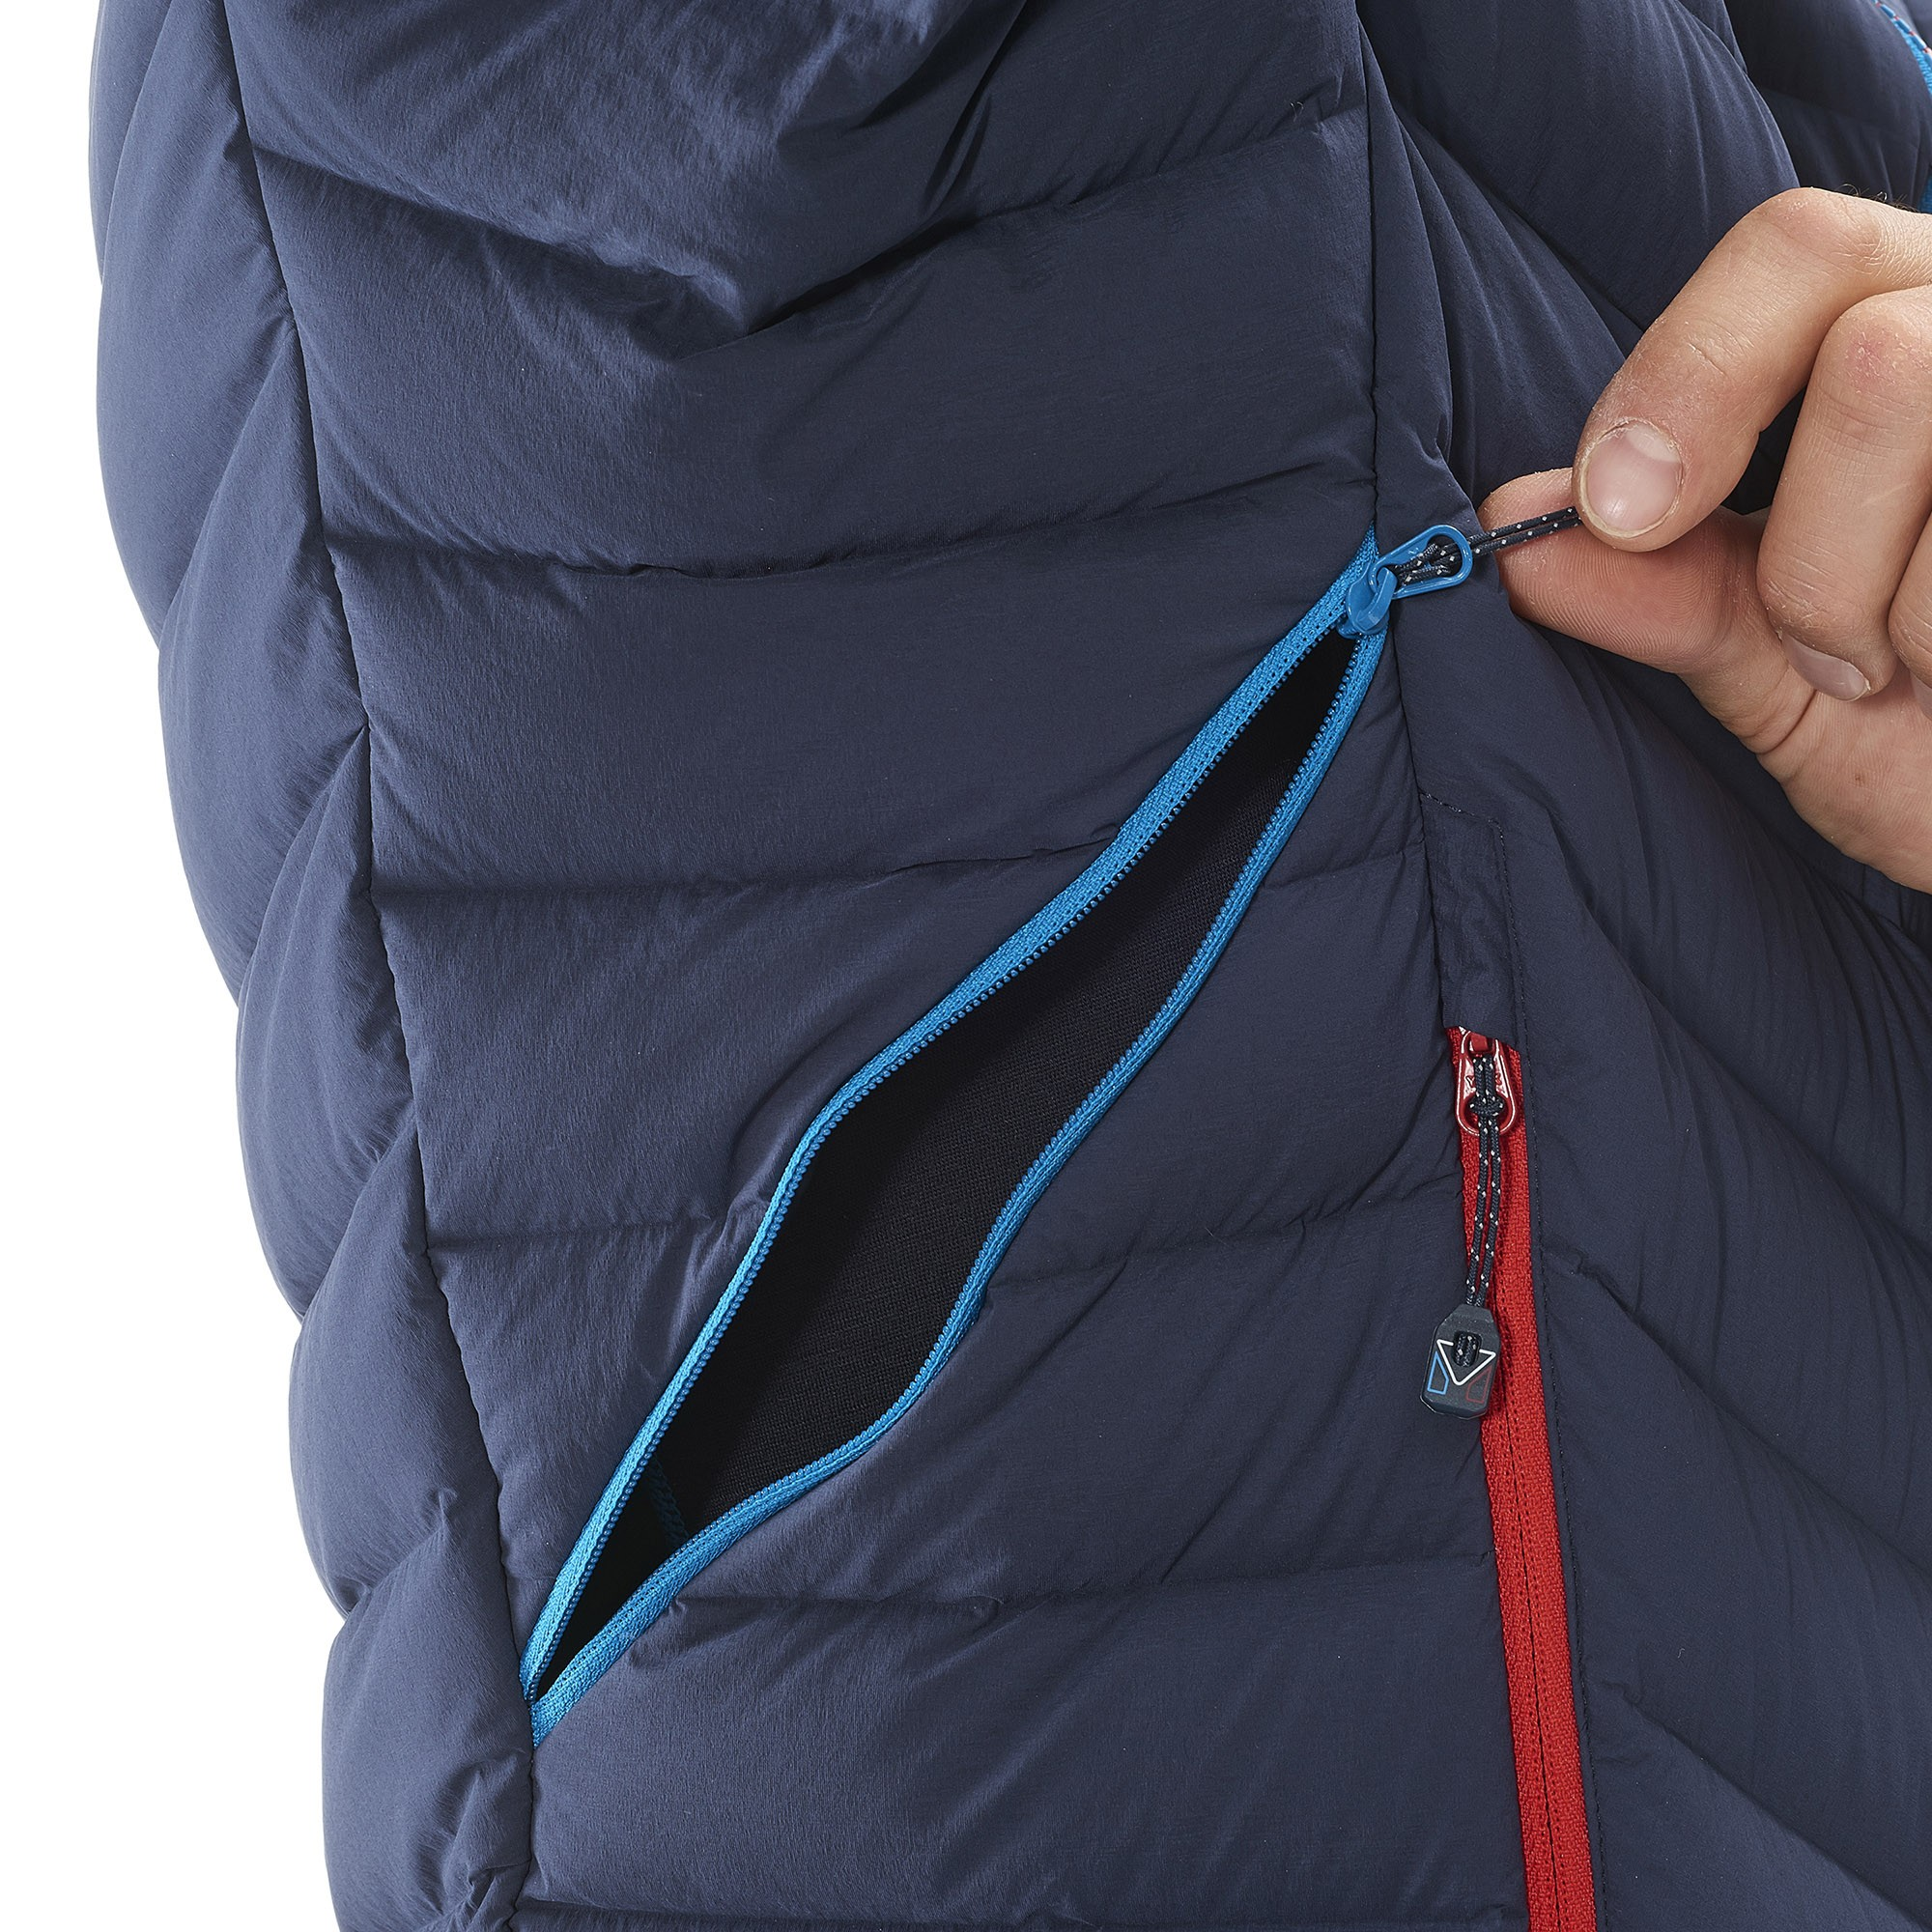 TRILOGY SYNTH'X Strench Down Jacket Manufacturers, TRILOGY SYNTH'X Strench Down Jacket Factory, Supply TRILOGY SYNTH'X Strench Down Jacket